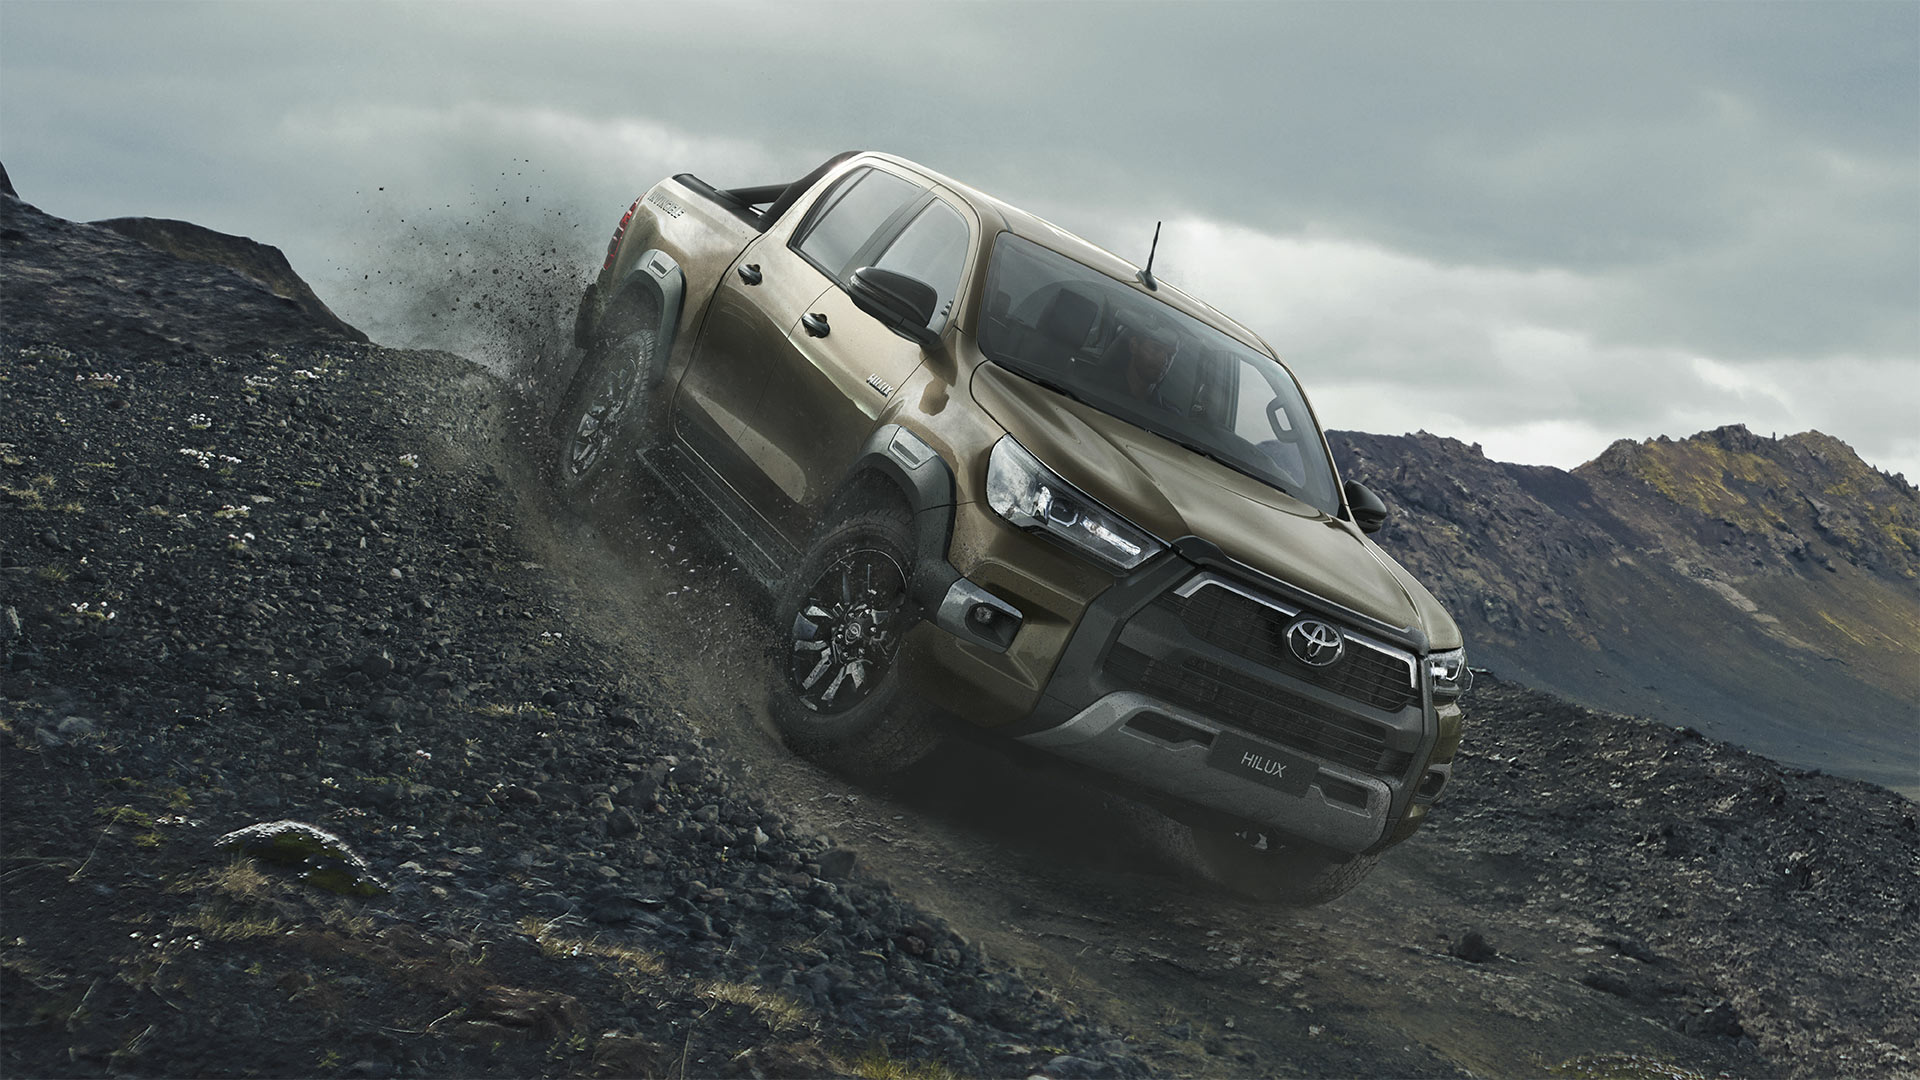 toyota_hilux_2020_gallery_02_full_tcm_3046_2017443_01